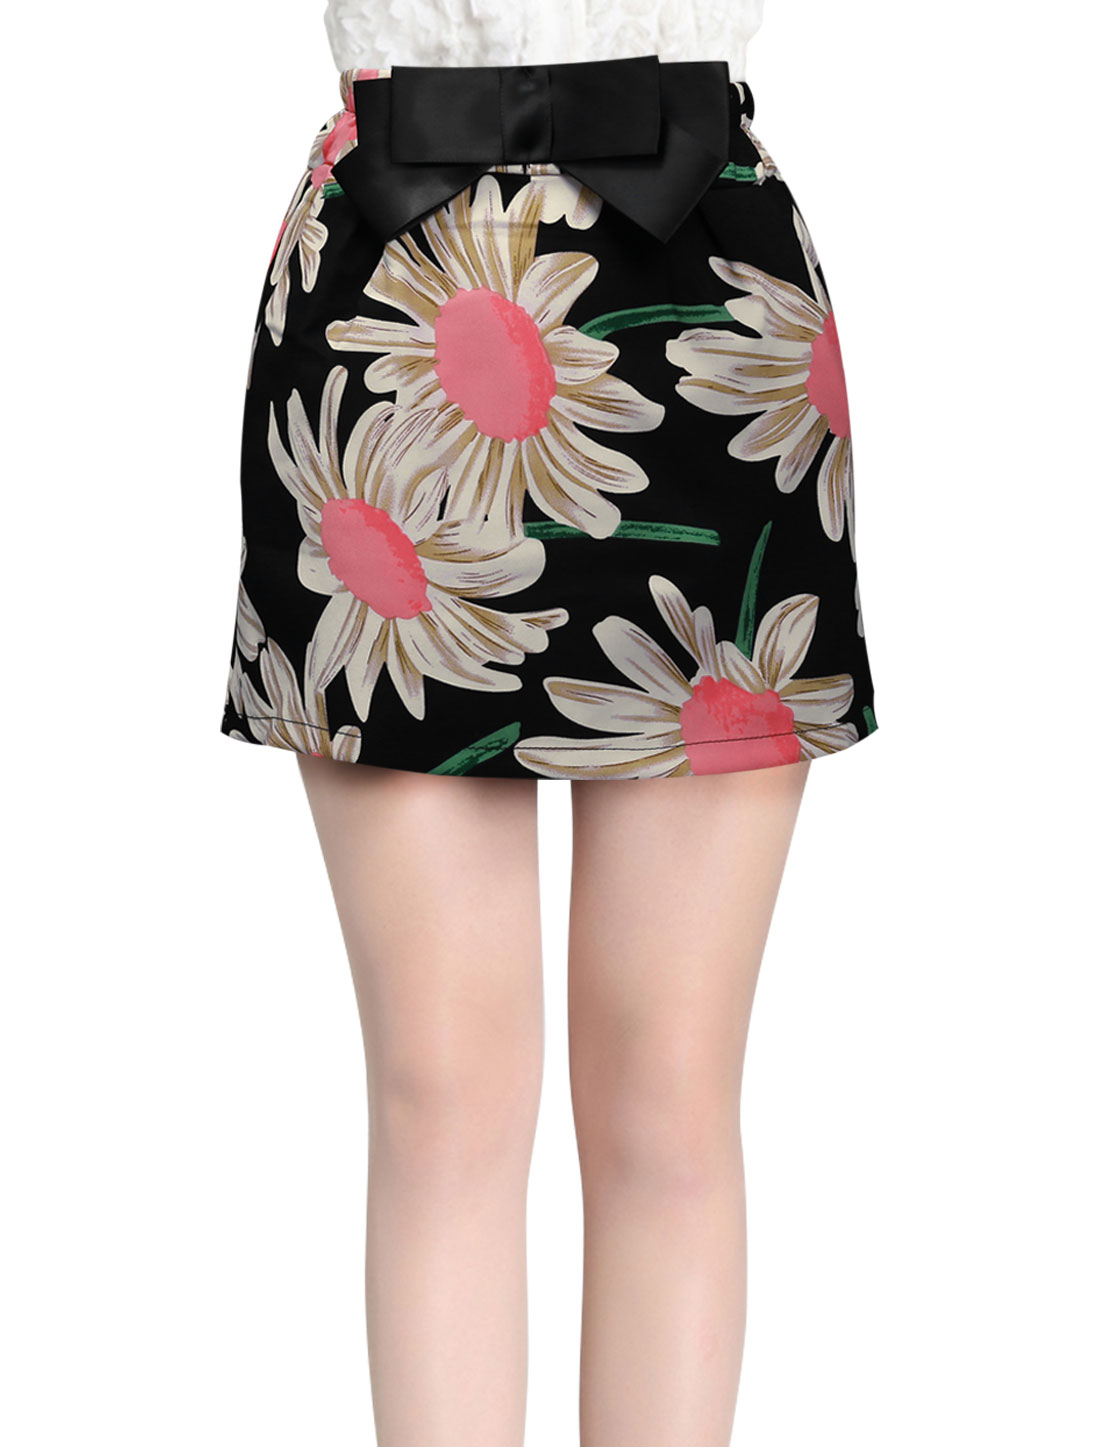 Lady Flower Pattern Side Pockets Bowknot Accent Summer Fit Mini Skirt Black XS